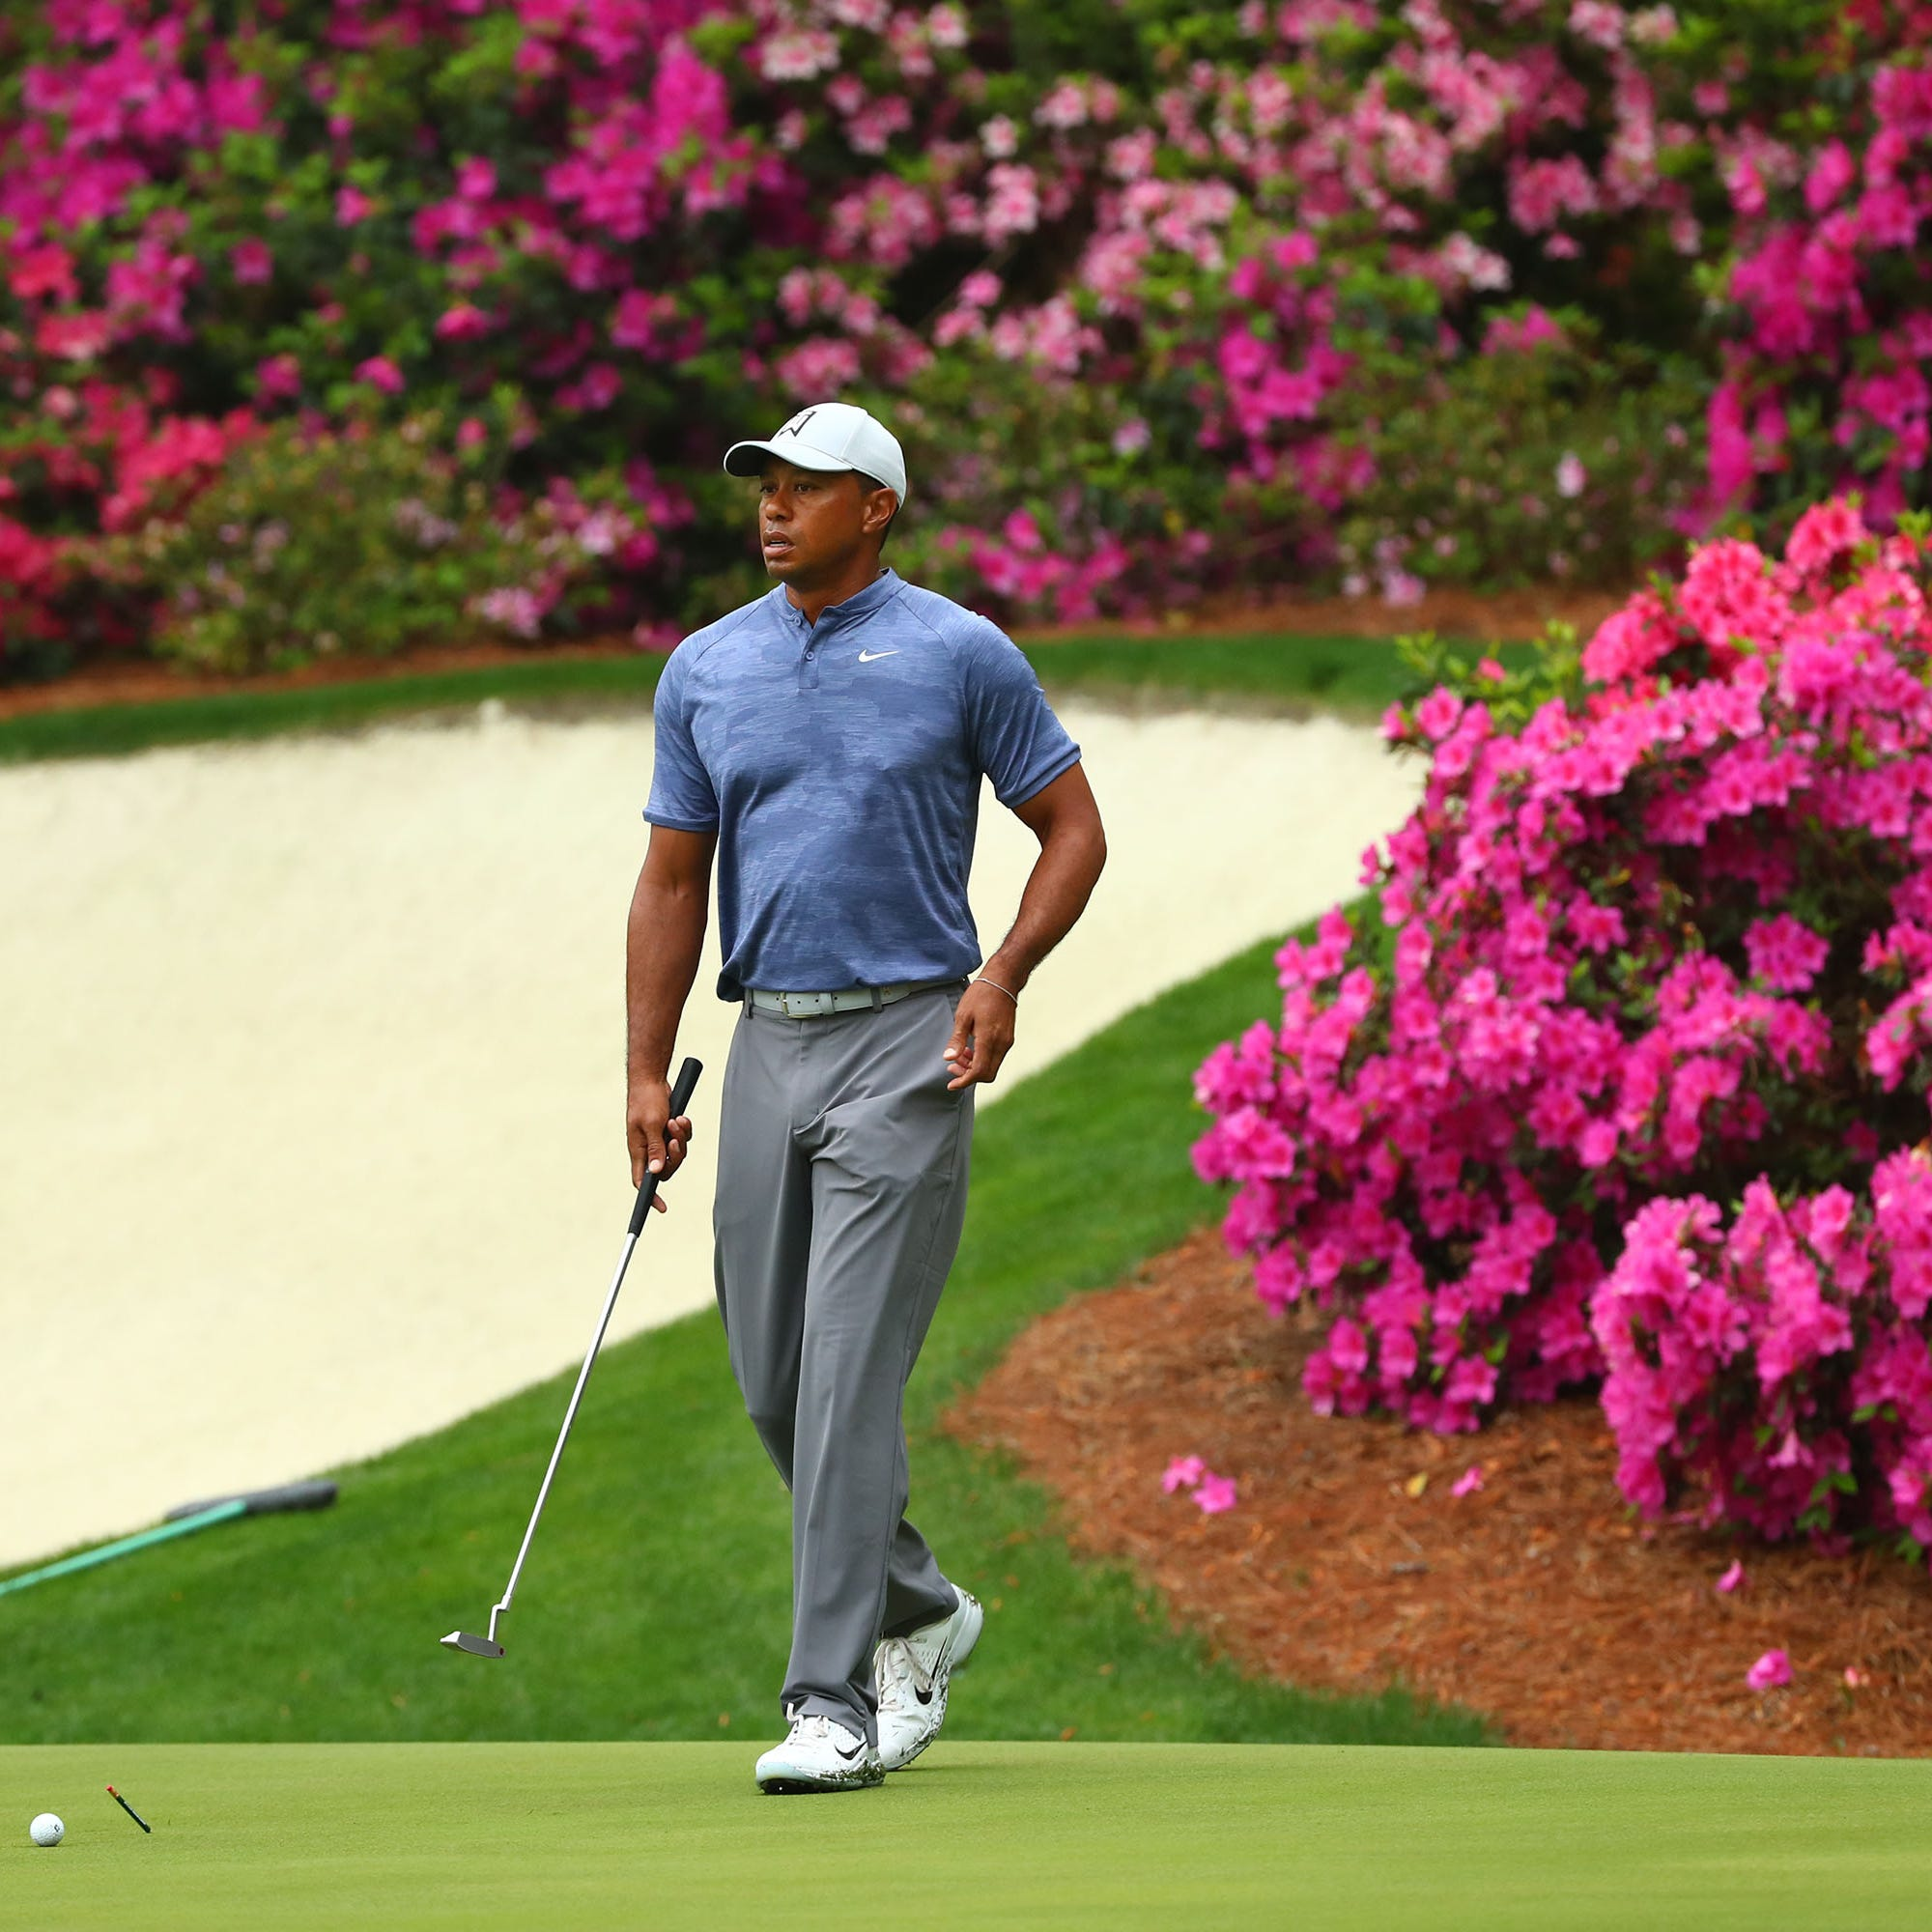 Paul Daugherty: The Masters isn't as seen on television